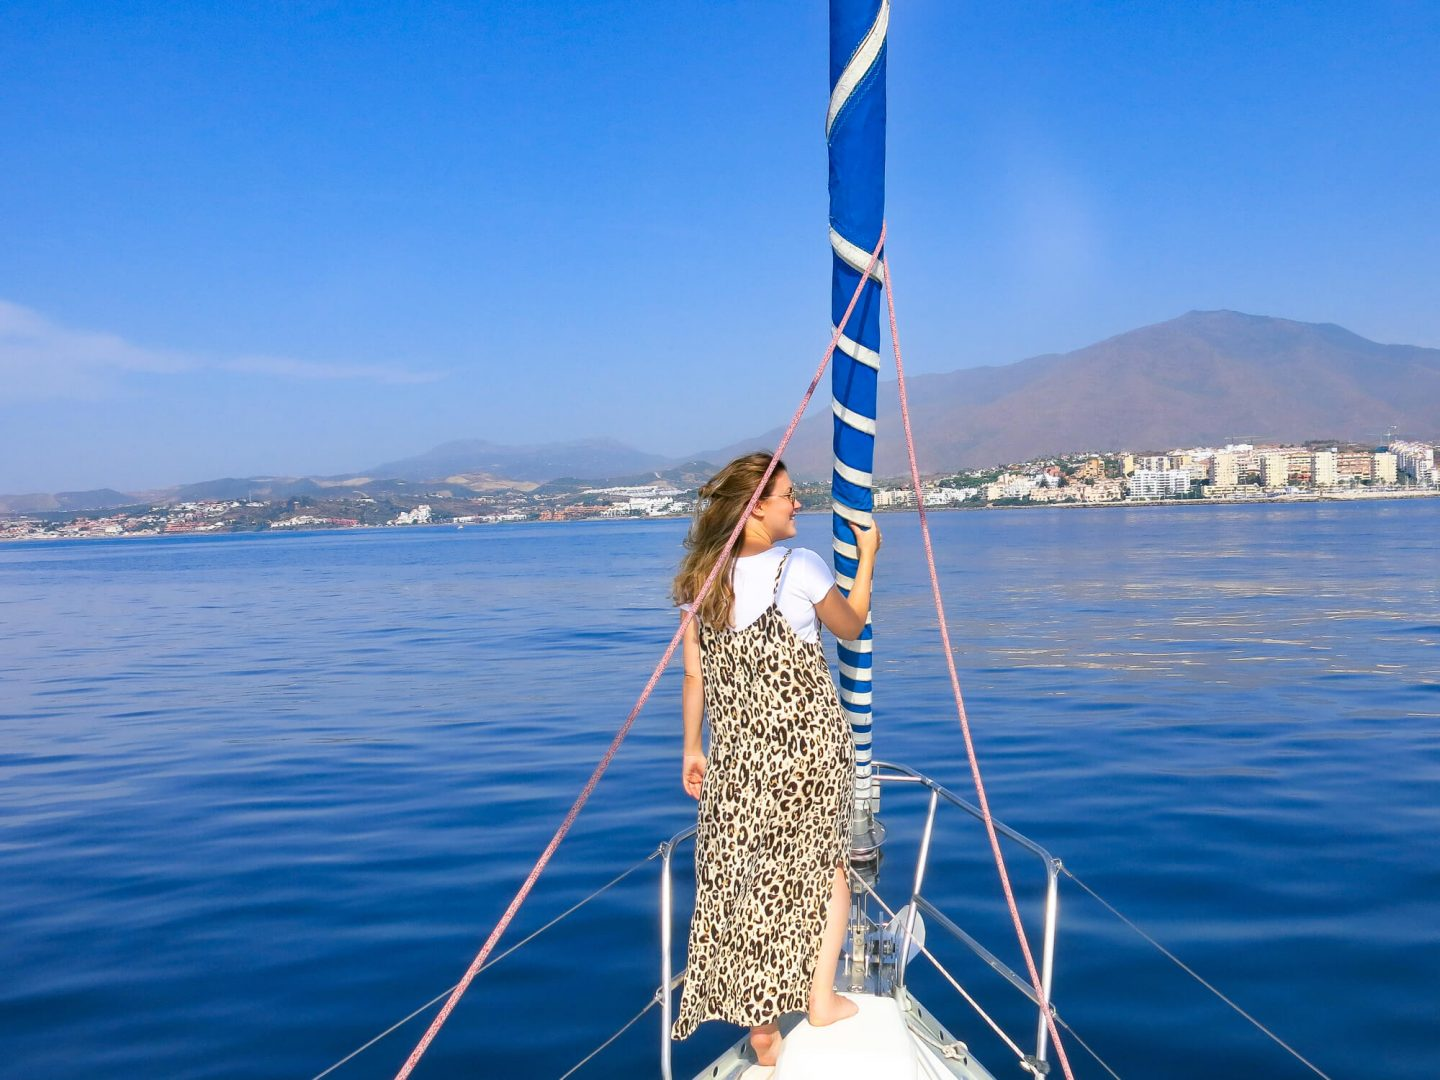 Woman on a boat, trying to spot dolphins off the shore of Andalusia. One of the day trips offered by Kempinski Hotel Bahía, Spain